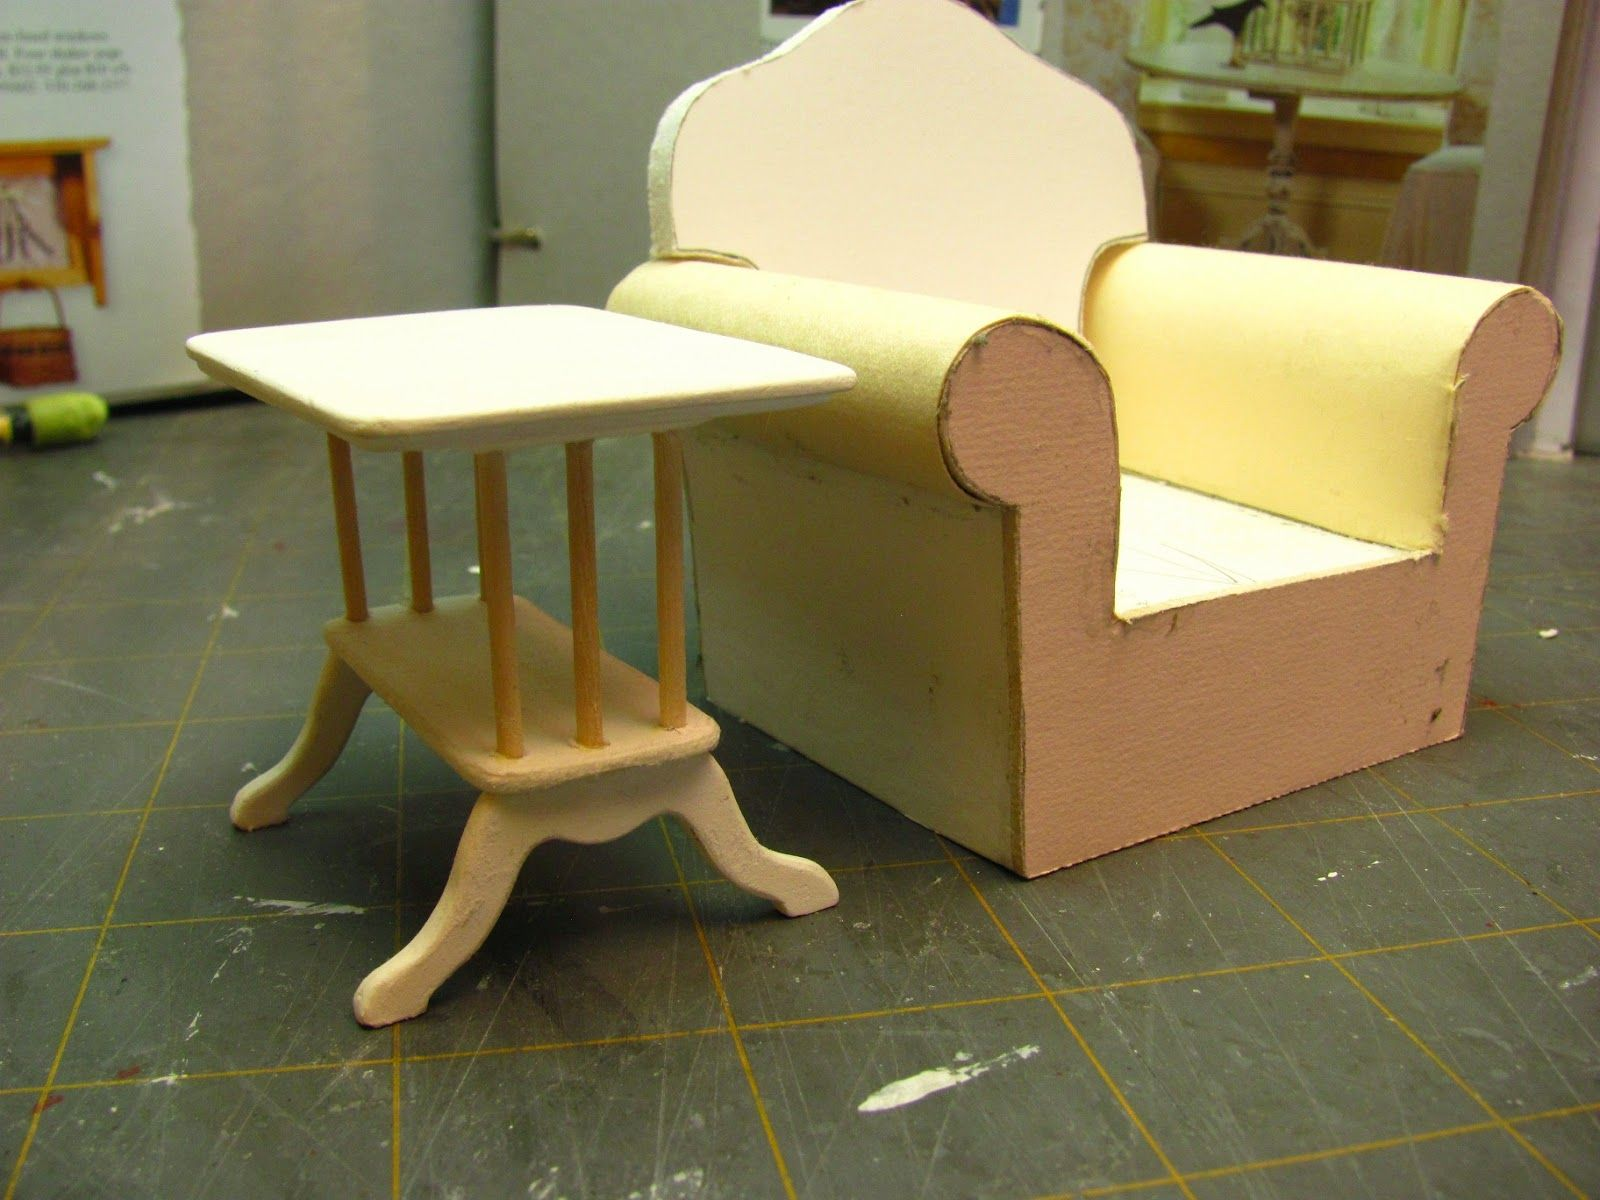 A 1 Custom Cabinets 164 Best Images About Miniature Furnishings Tutorials On Pinterest